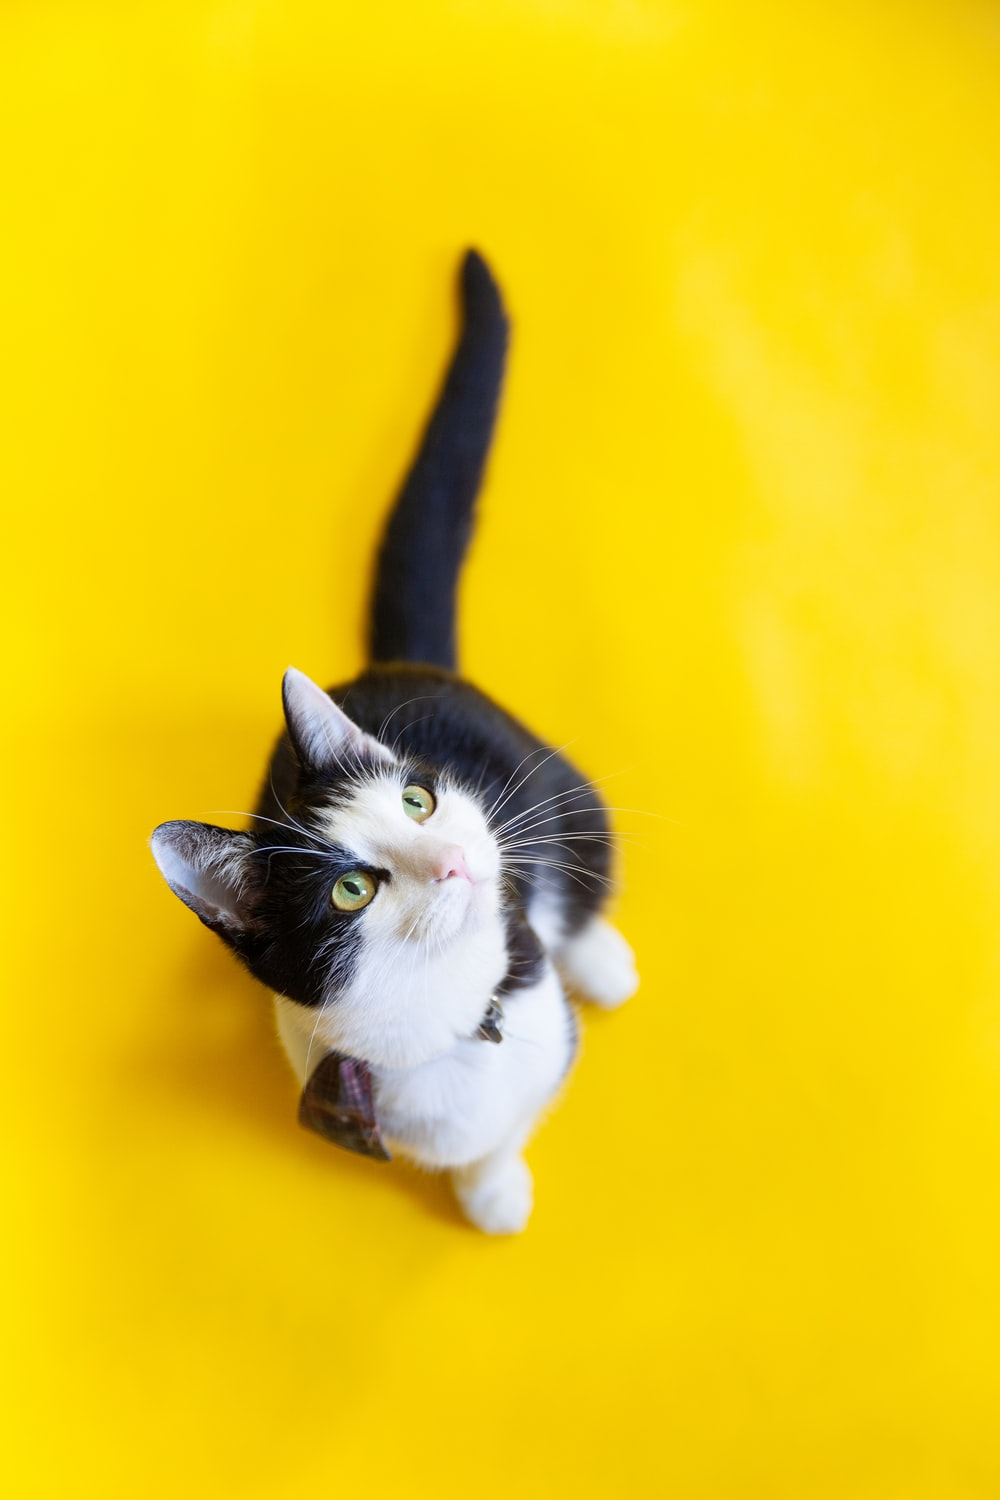 white and black cat on yellow surface